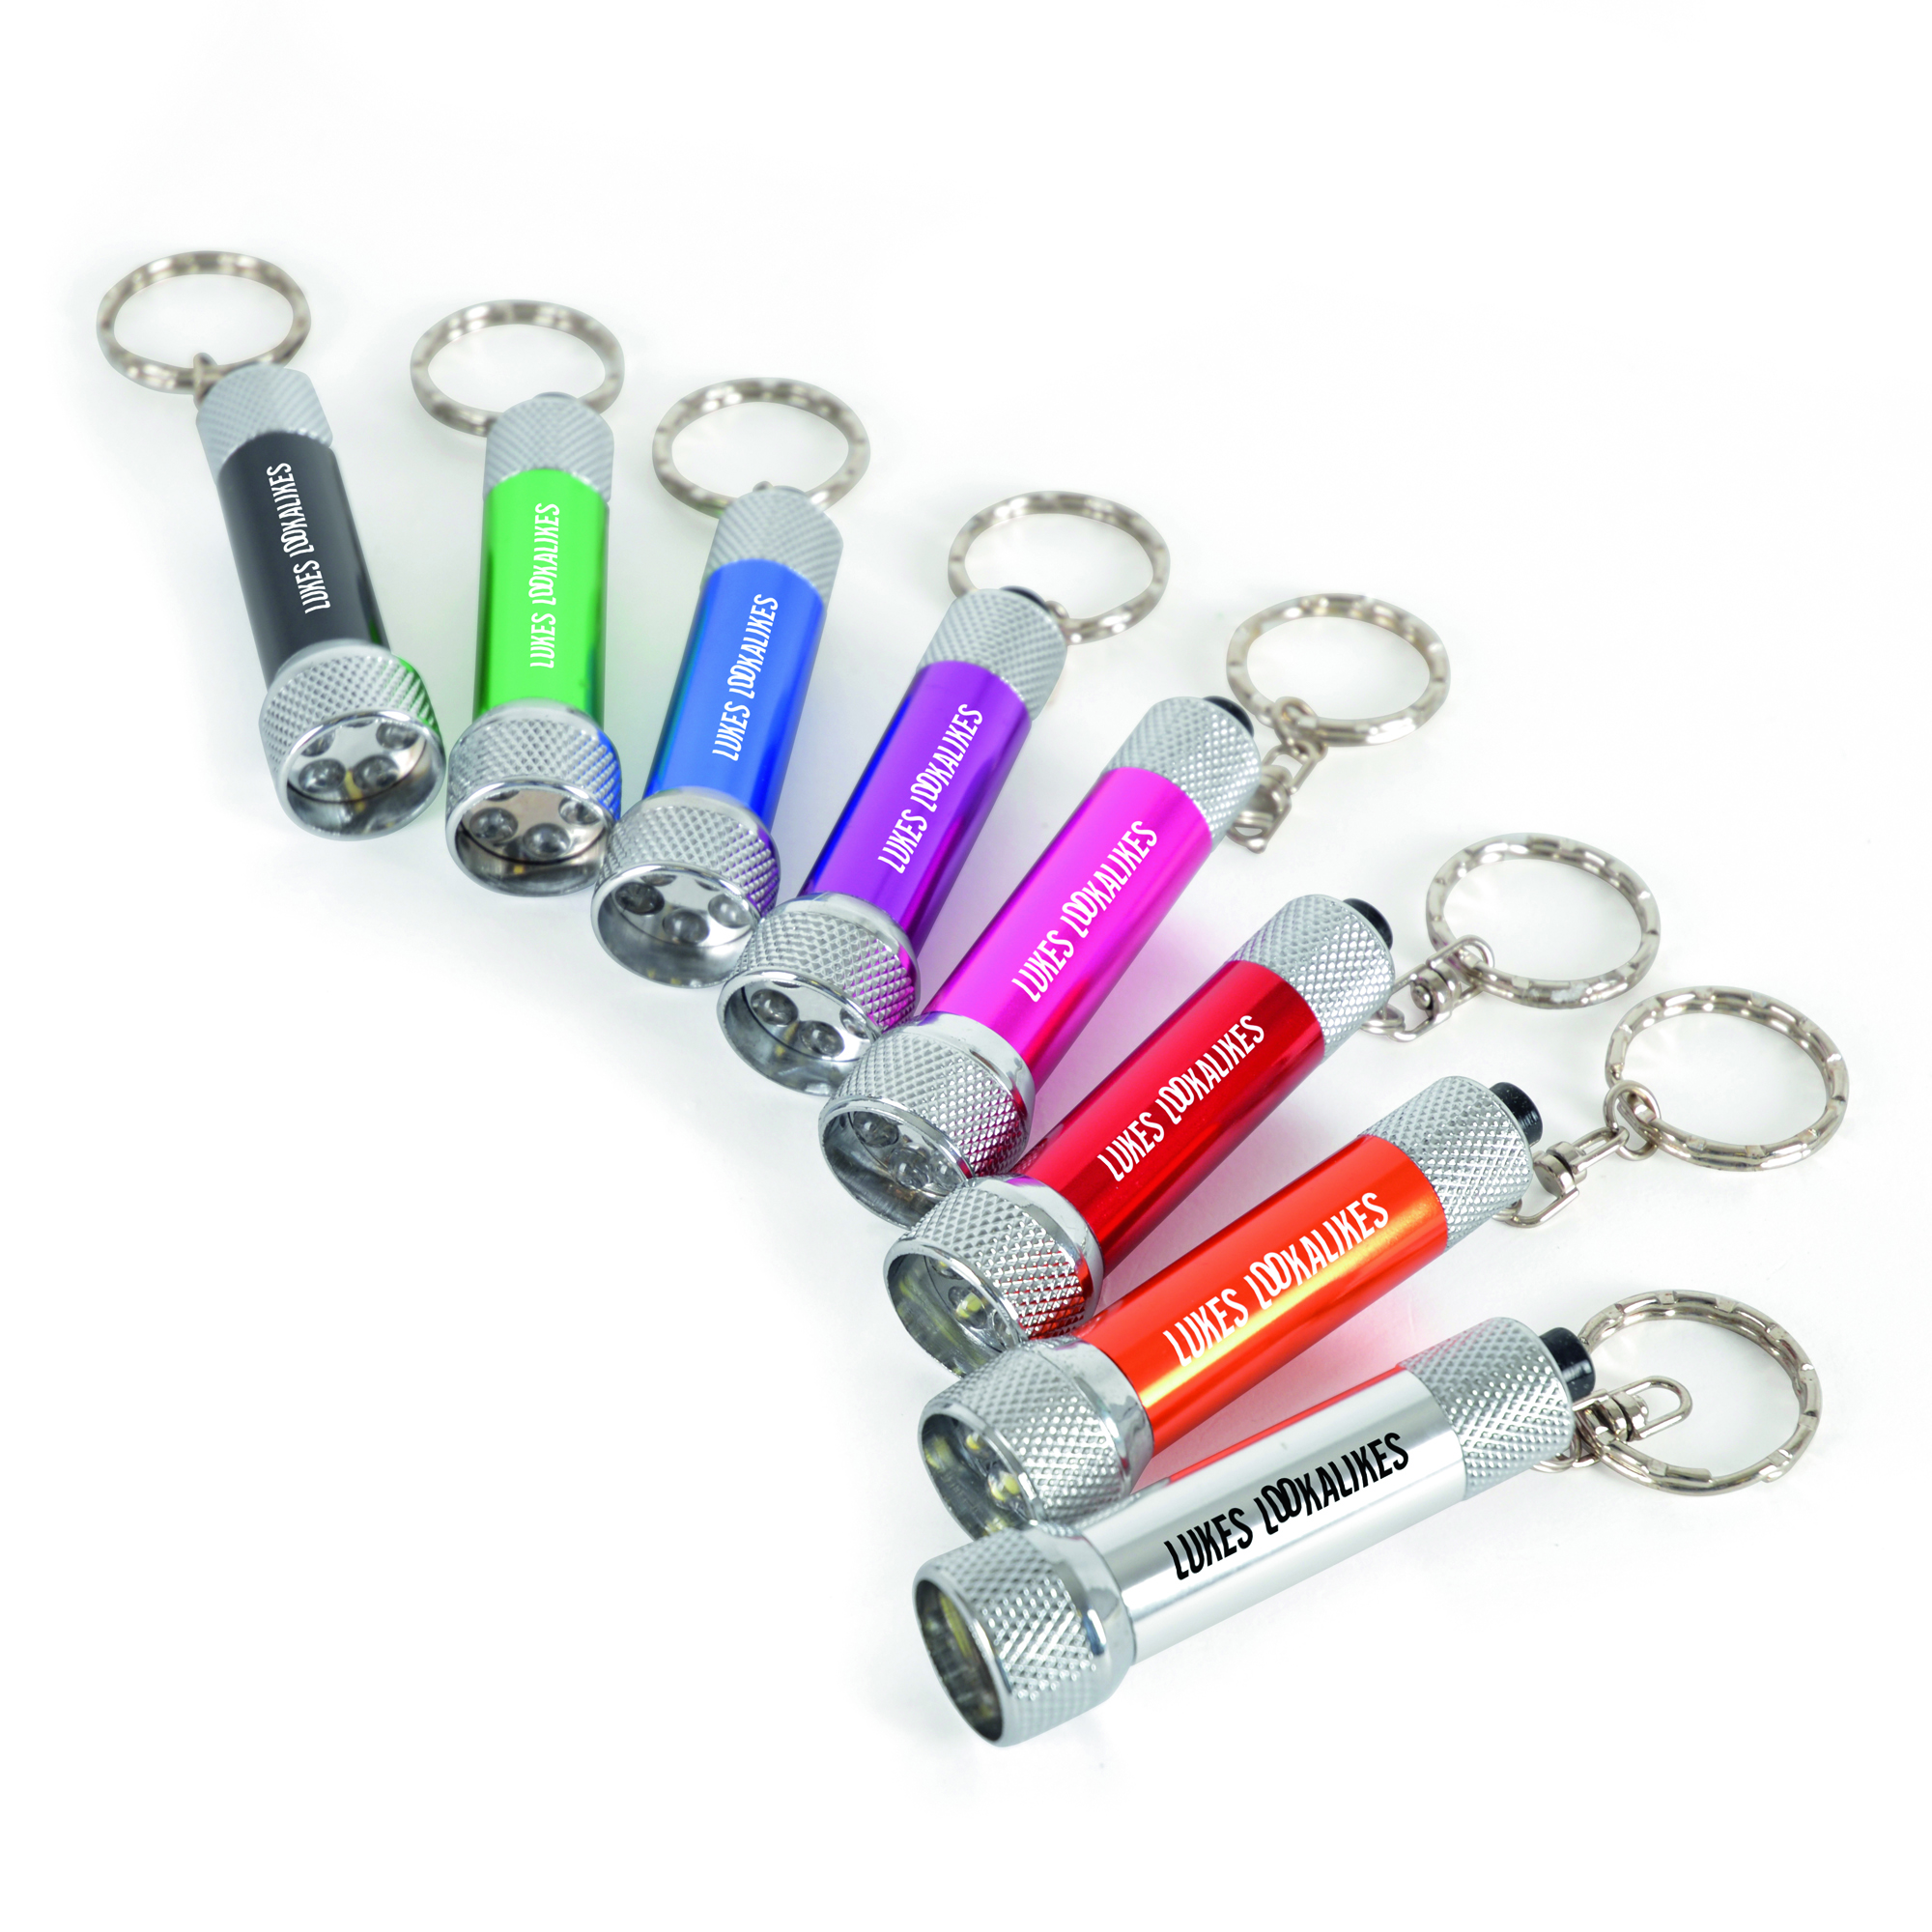 Product image 1 for Funky Keyring Torch